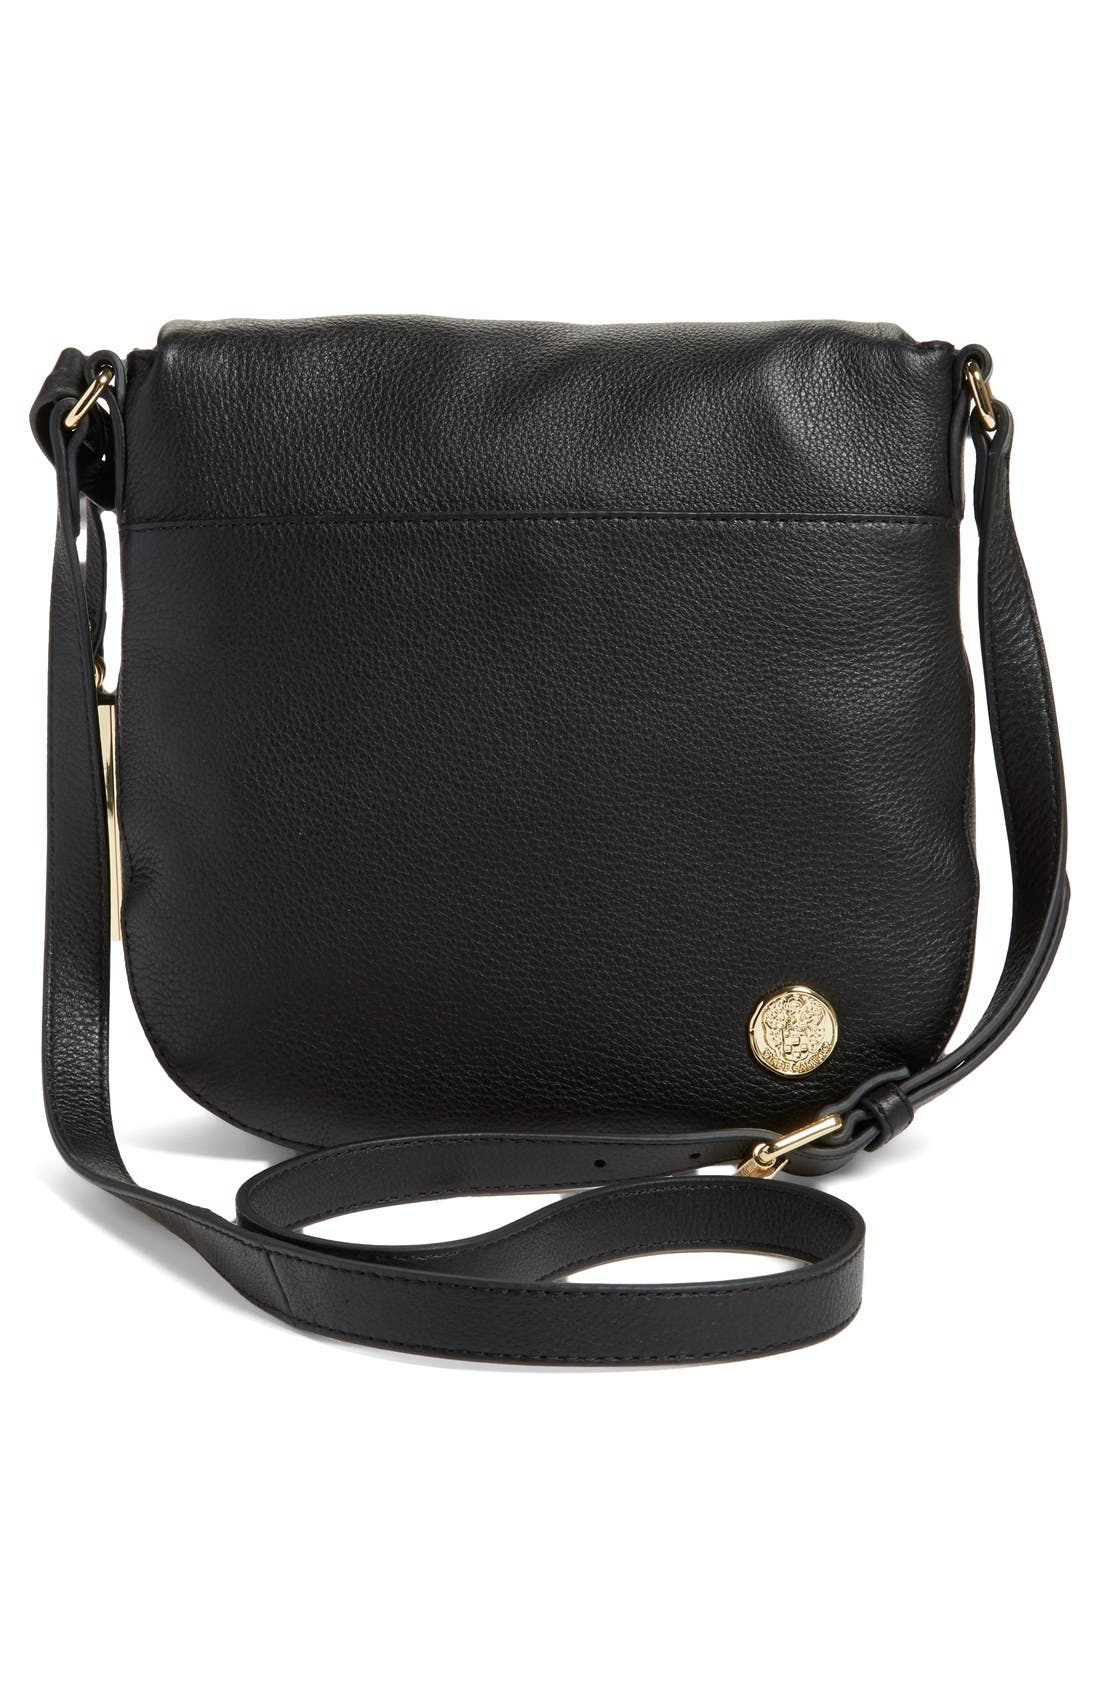 'Tala' Leather Crossbody Bag,                             Alternate thumbnail 21, color,